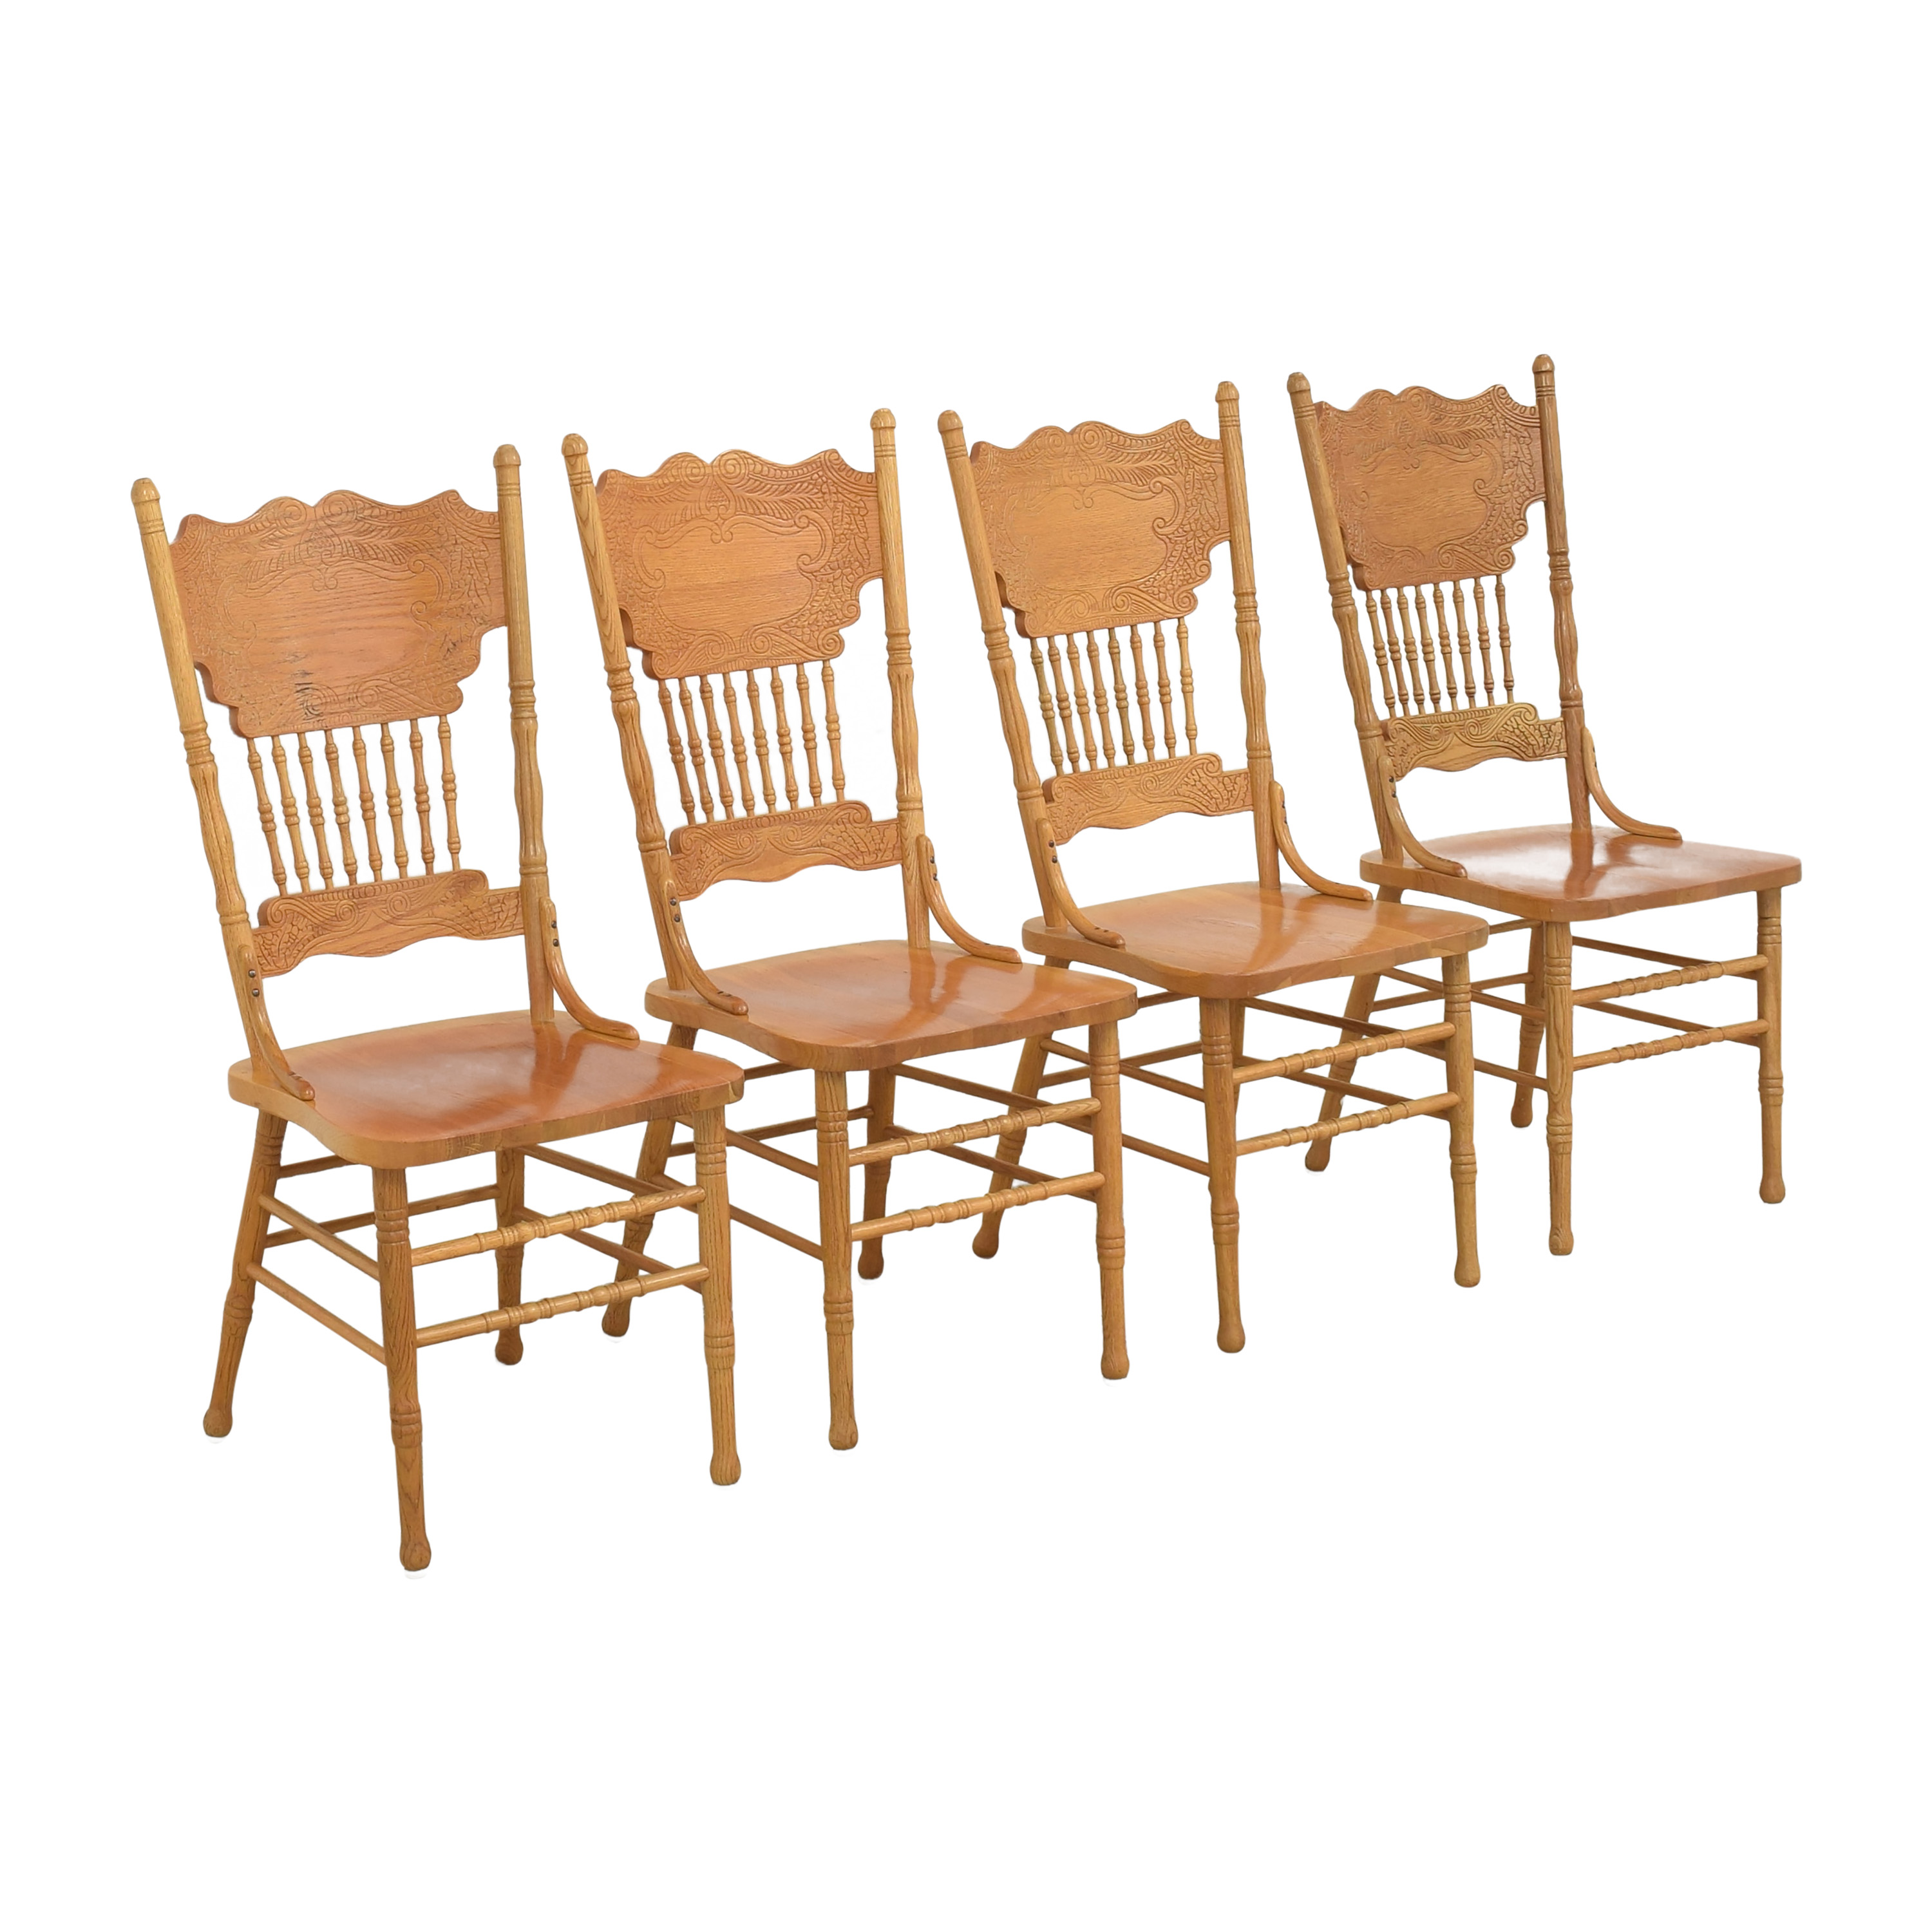 A-America Wood Furniture A-America Wood Carved Dining Chairs on sale